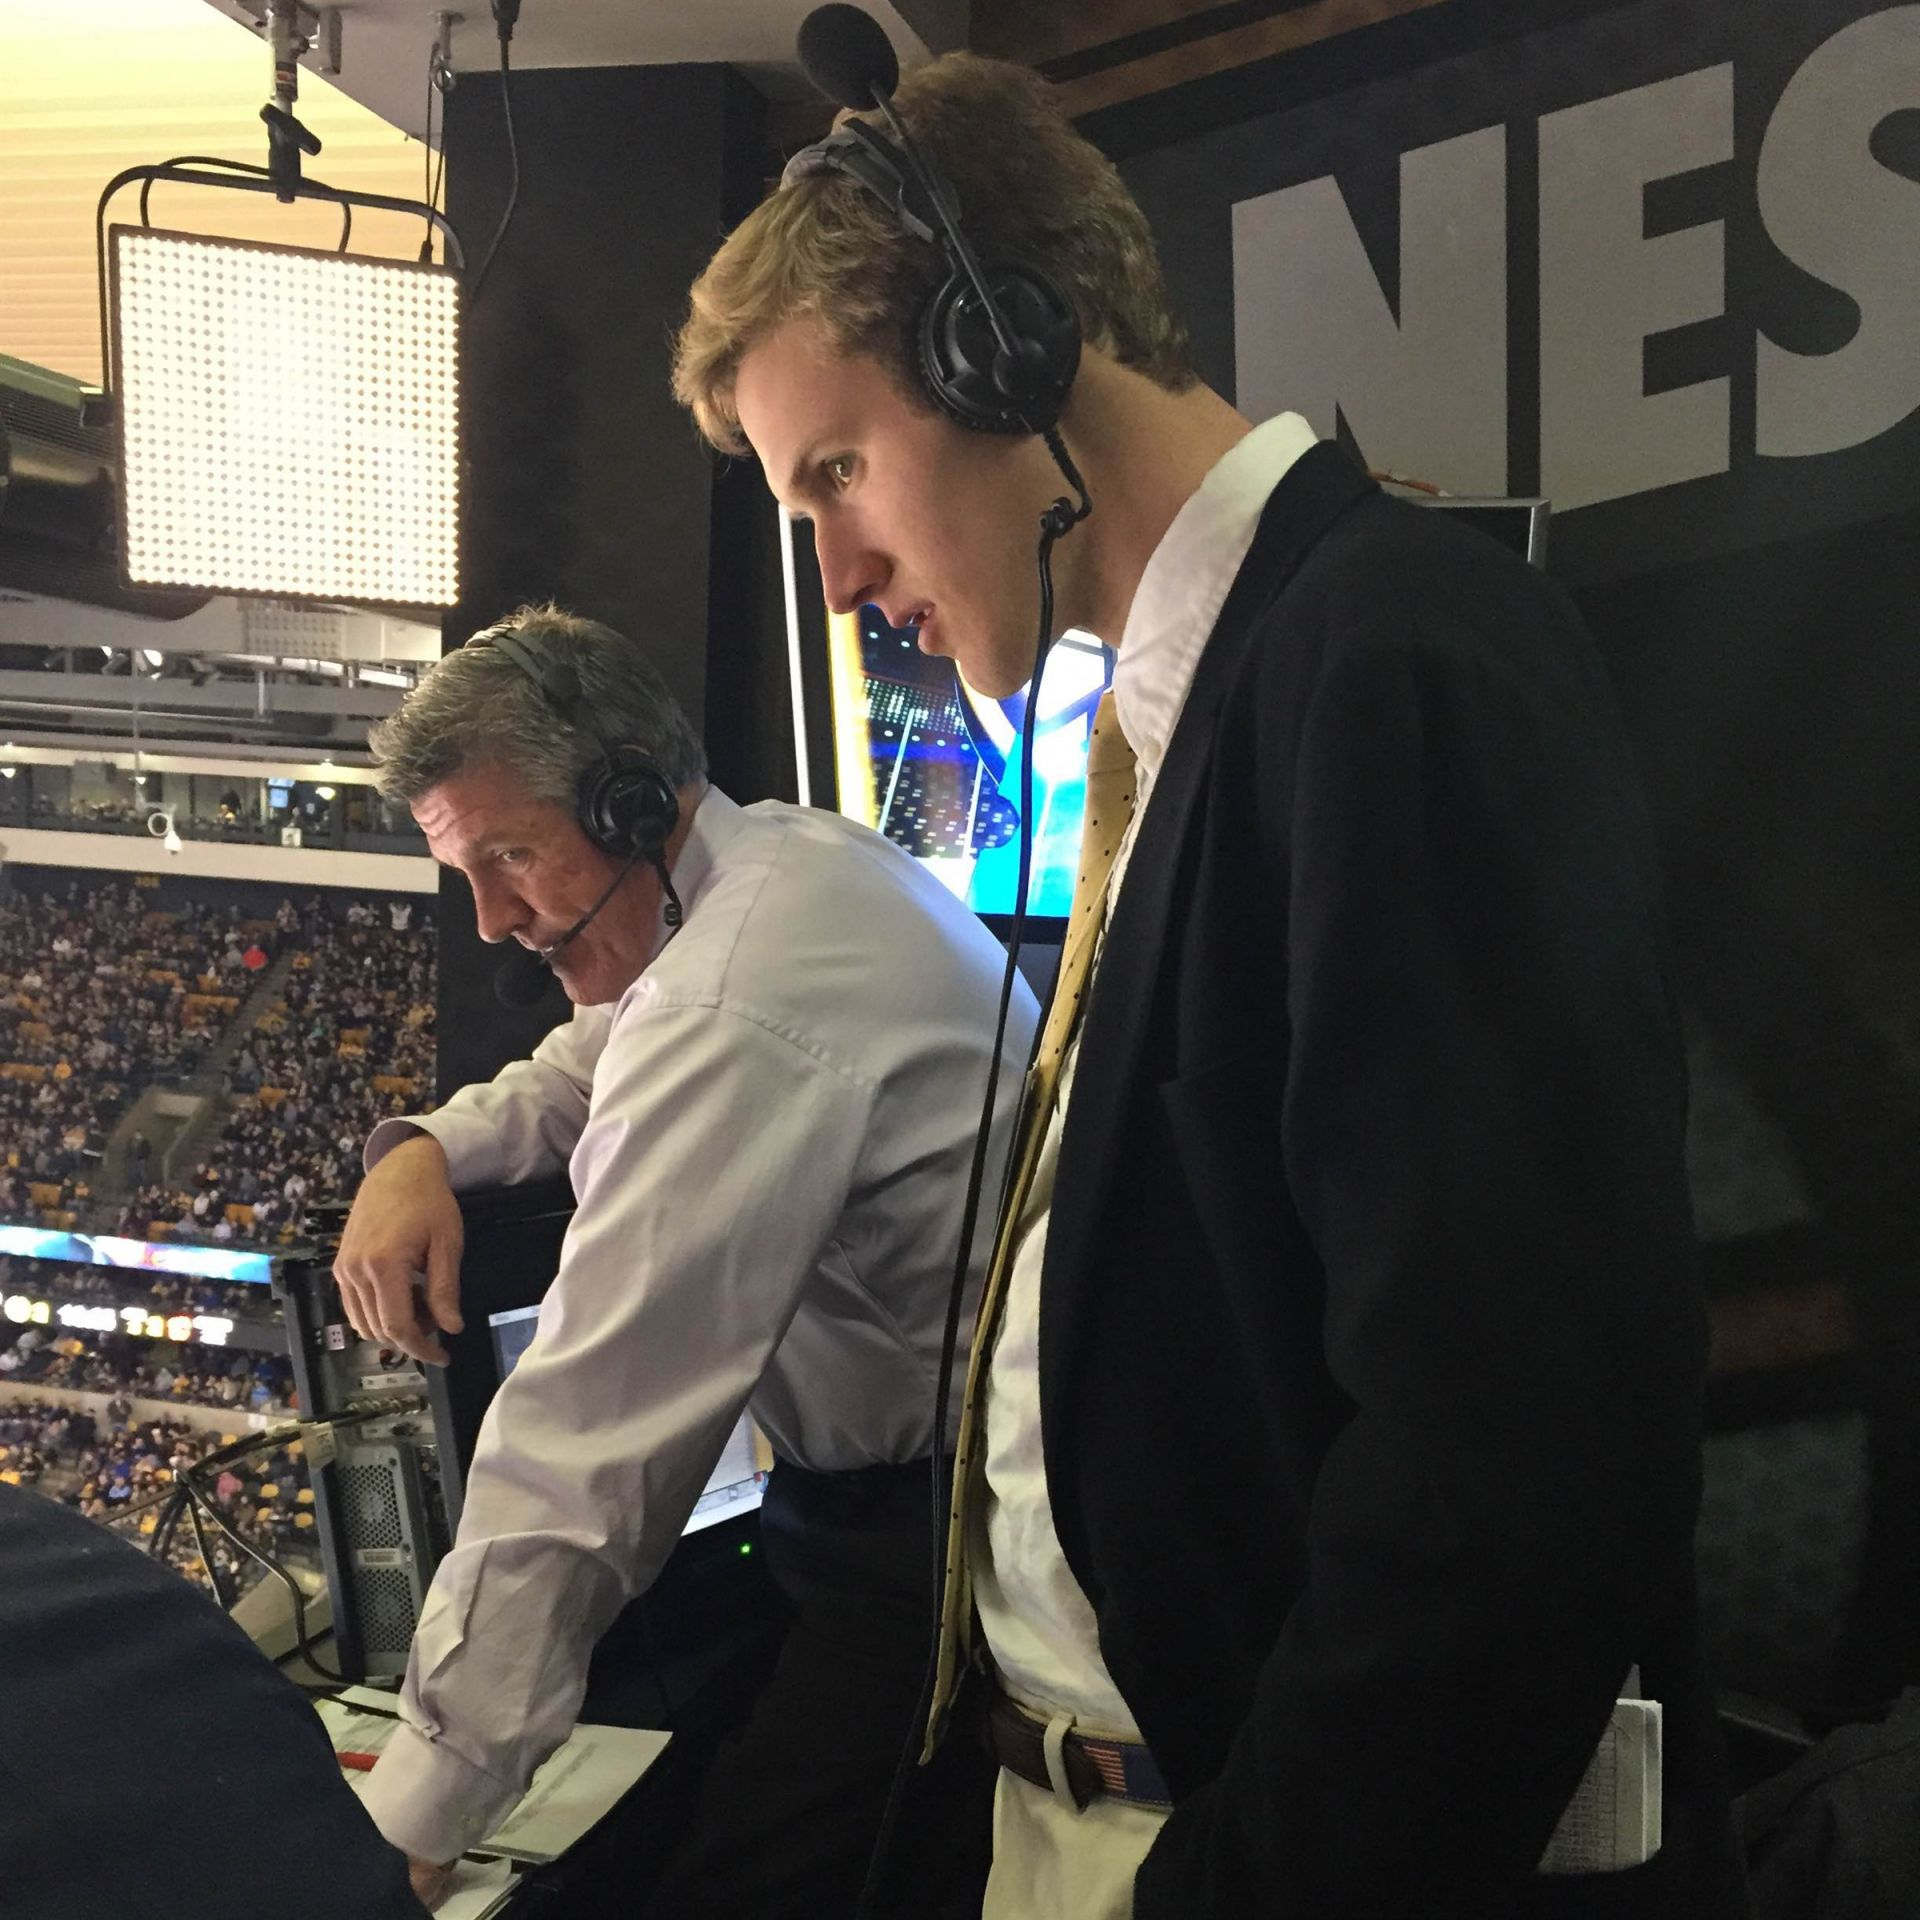 Charles Harker: Shadowing Jack Edwards who is the NESN play-by-play announcer for the Boston Bruins.